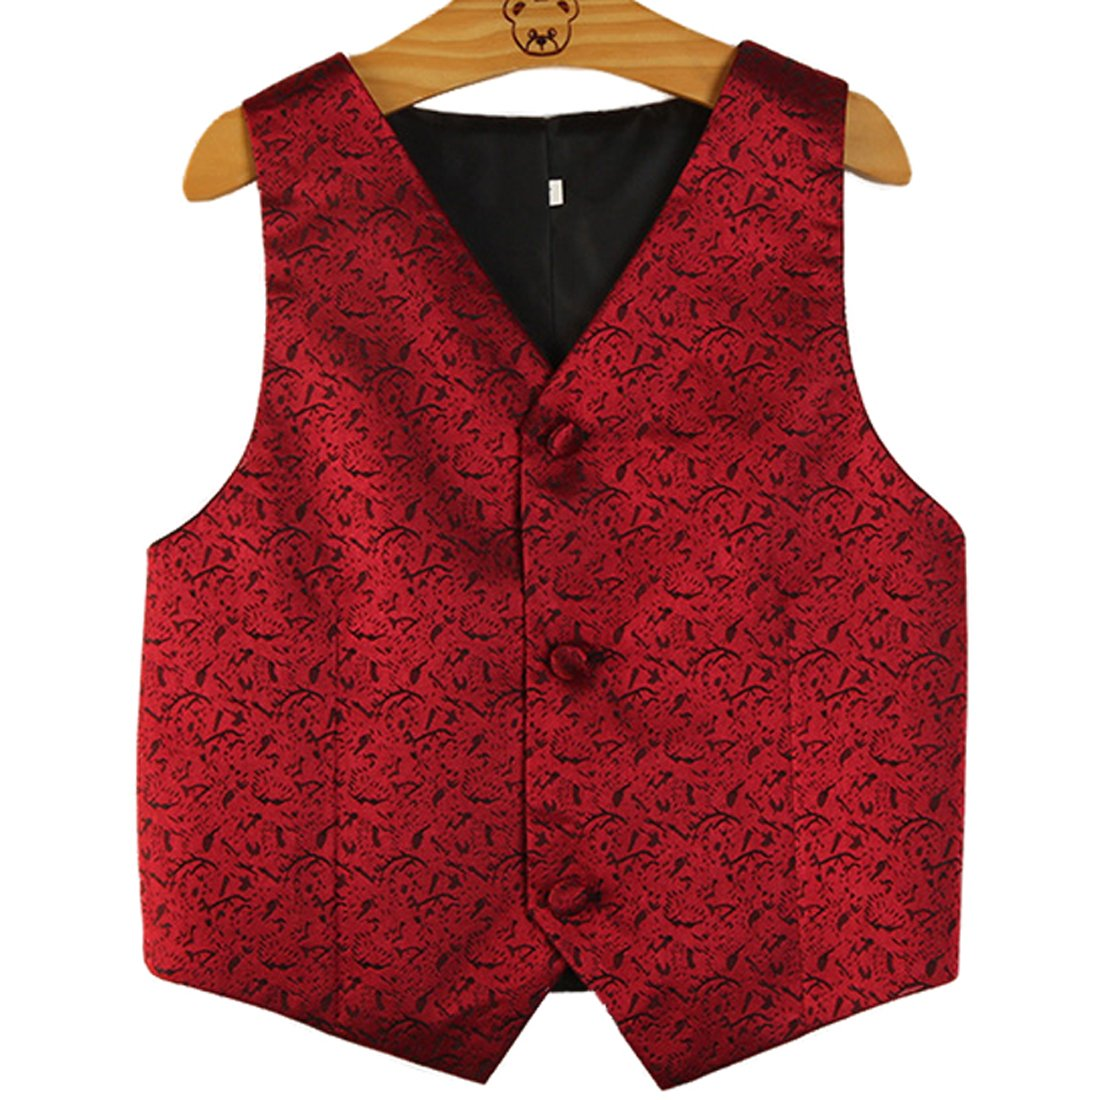 PYJTRL Boys Wedding Waistcoat (Red, Size 8/Height 115-125cm)